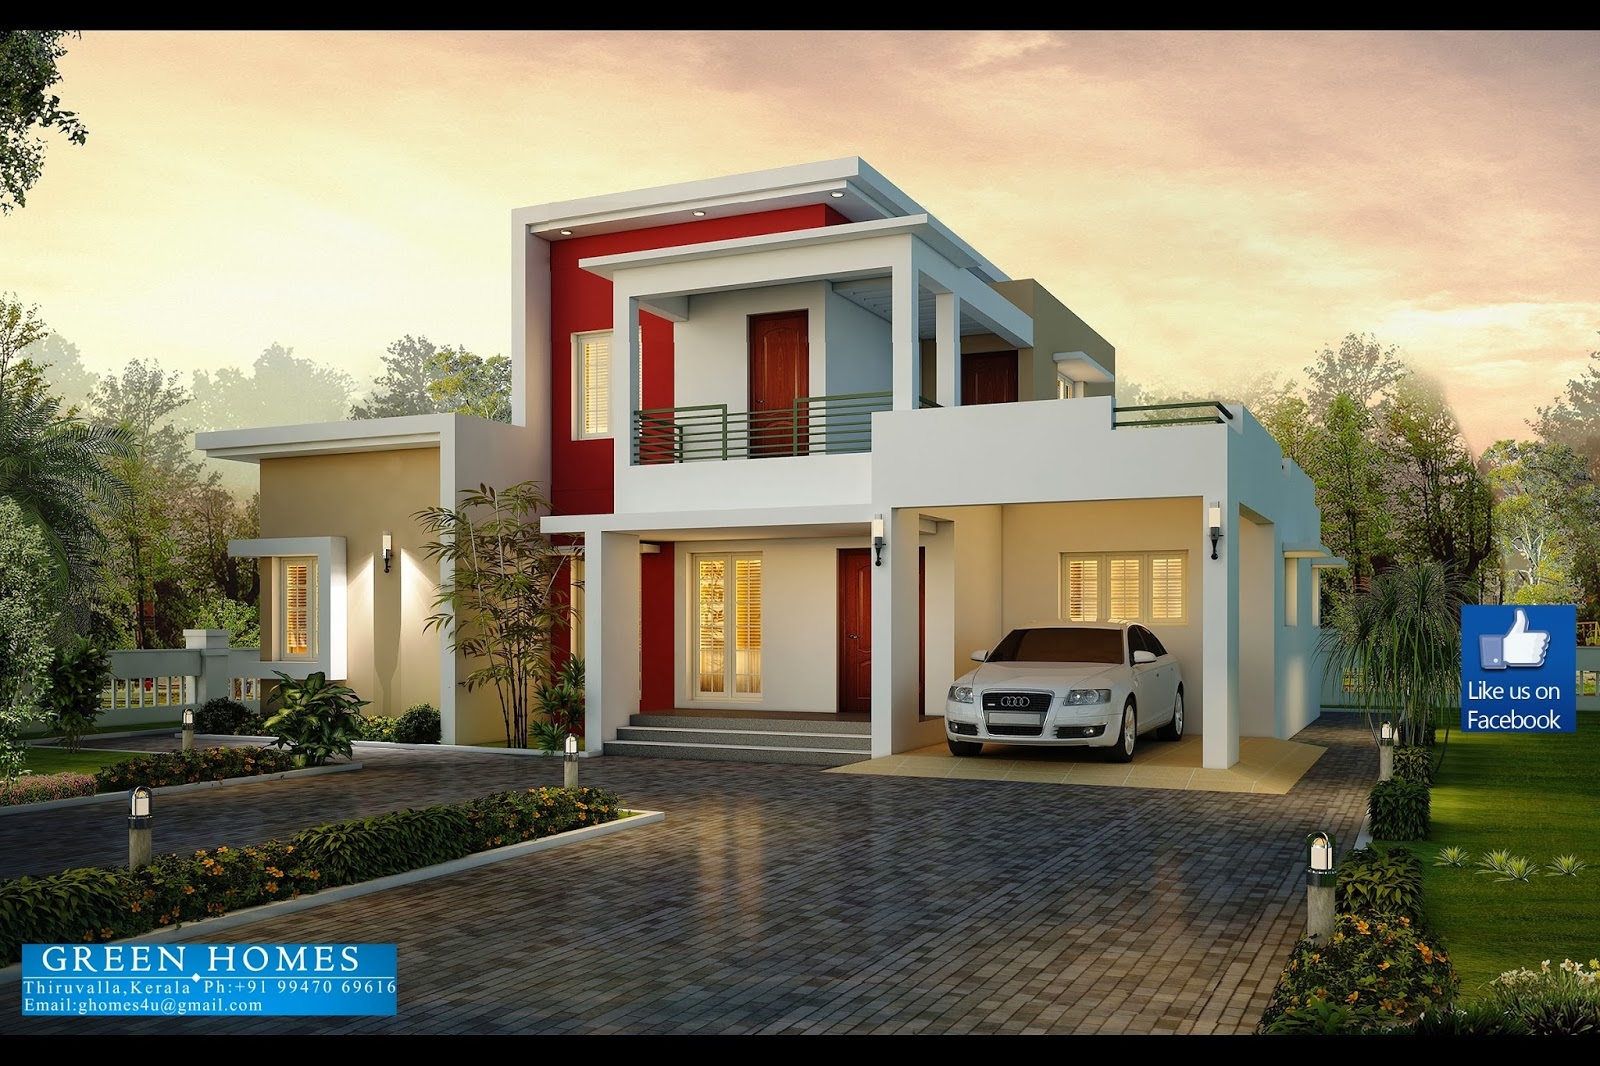 Green Homes Awesome 3 Bedroom Modern House Design: house three bedroom